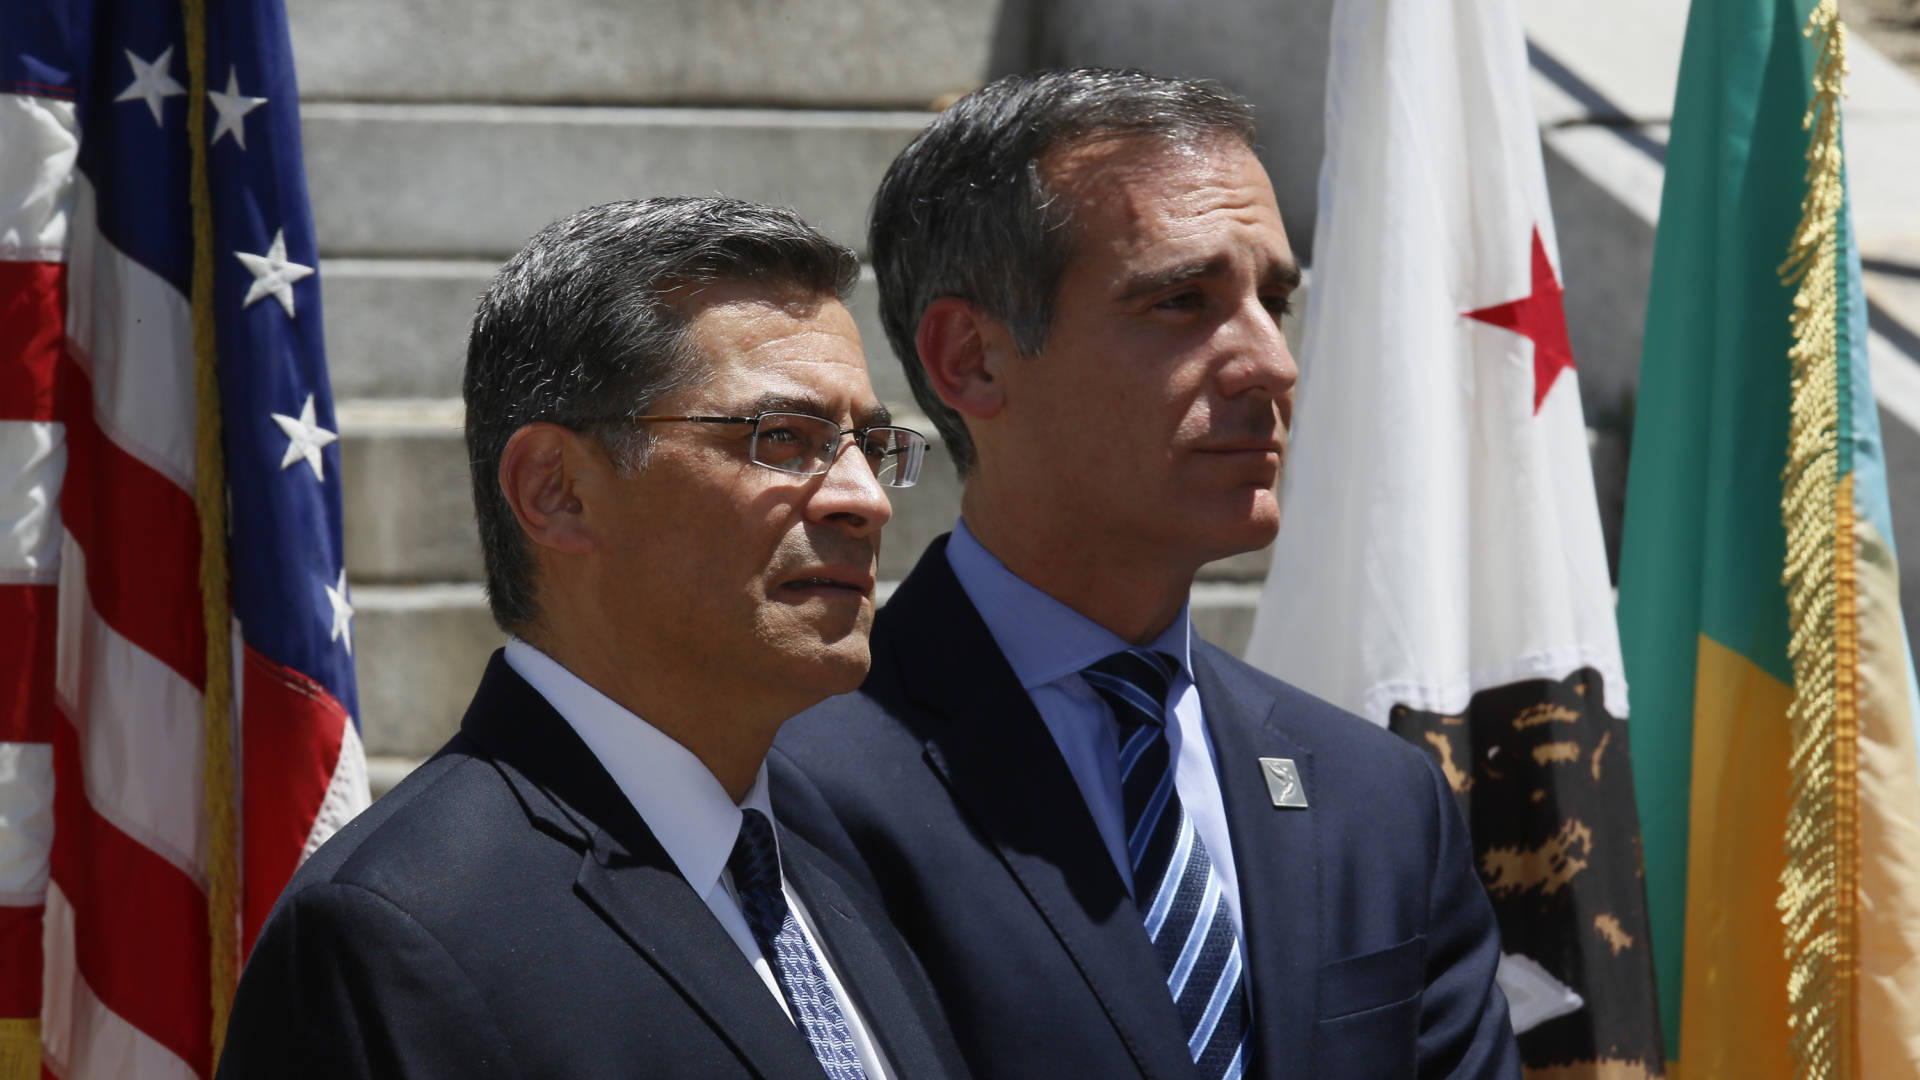 California Attorney General Xavier Becerra (left) and Los Angeles Mayor Eric Garcetti announced the city and county of Los Angeles, plus four other cities, were joining California's lawsuit over the 2020 census citizenship question in May. Damian Dovarganes/AP